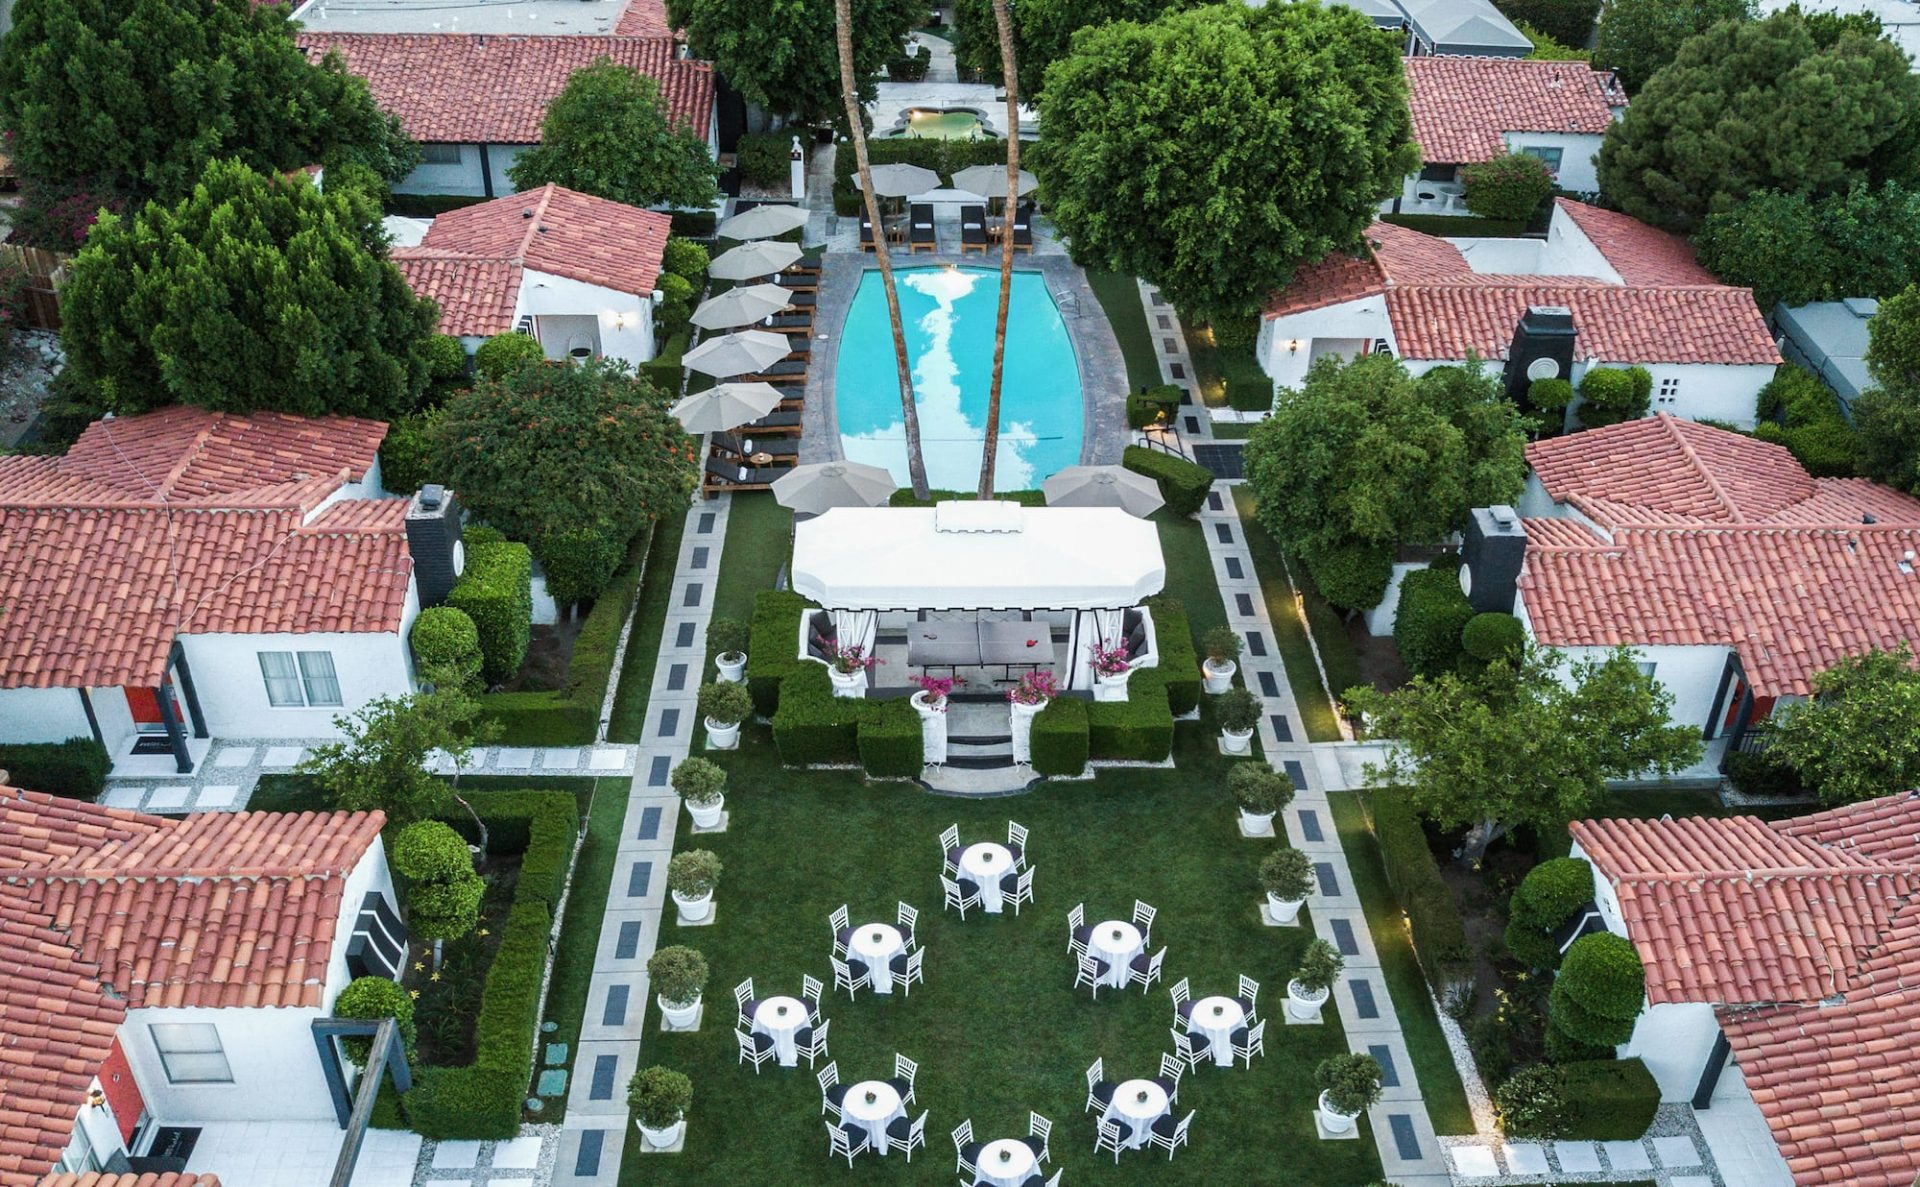 overhead view of large outdoor lawn with chairs and tables, surrounded by smaller buildings